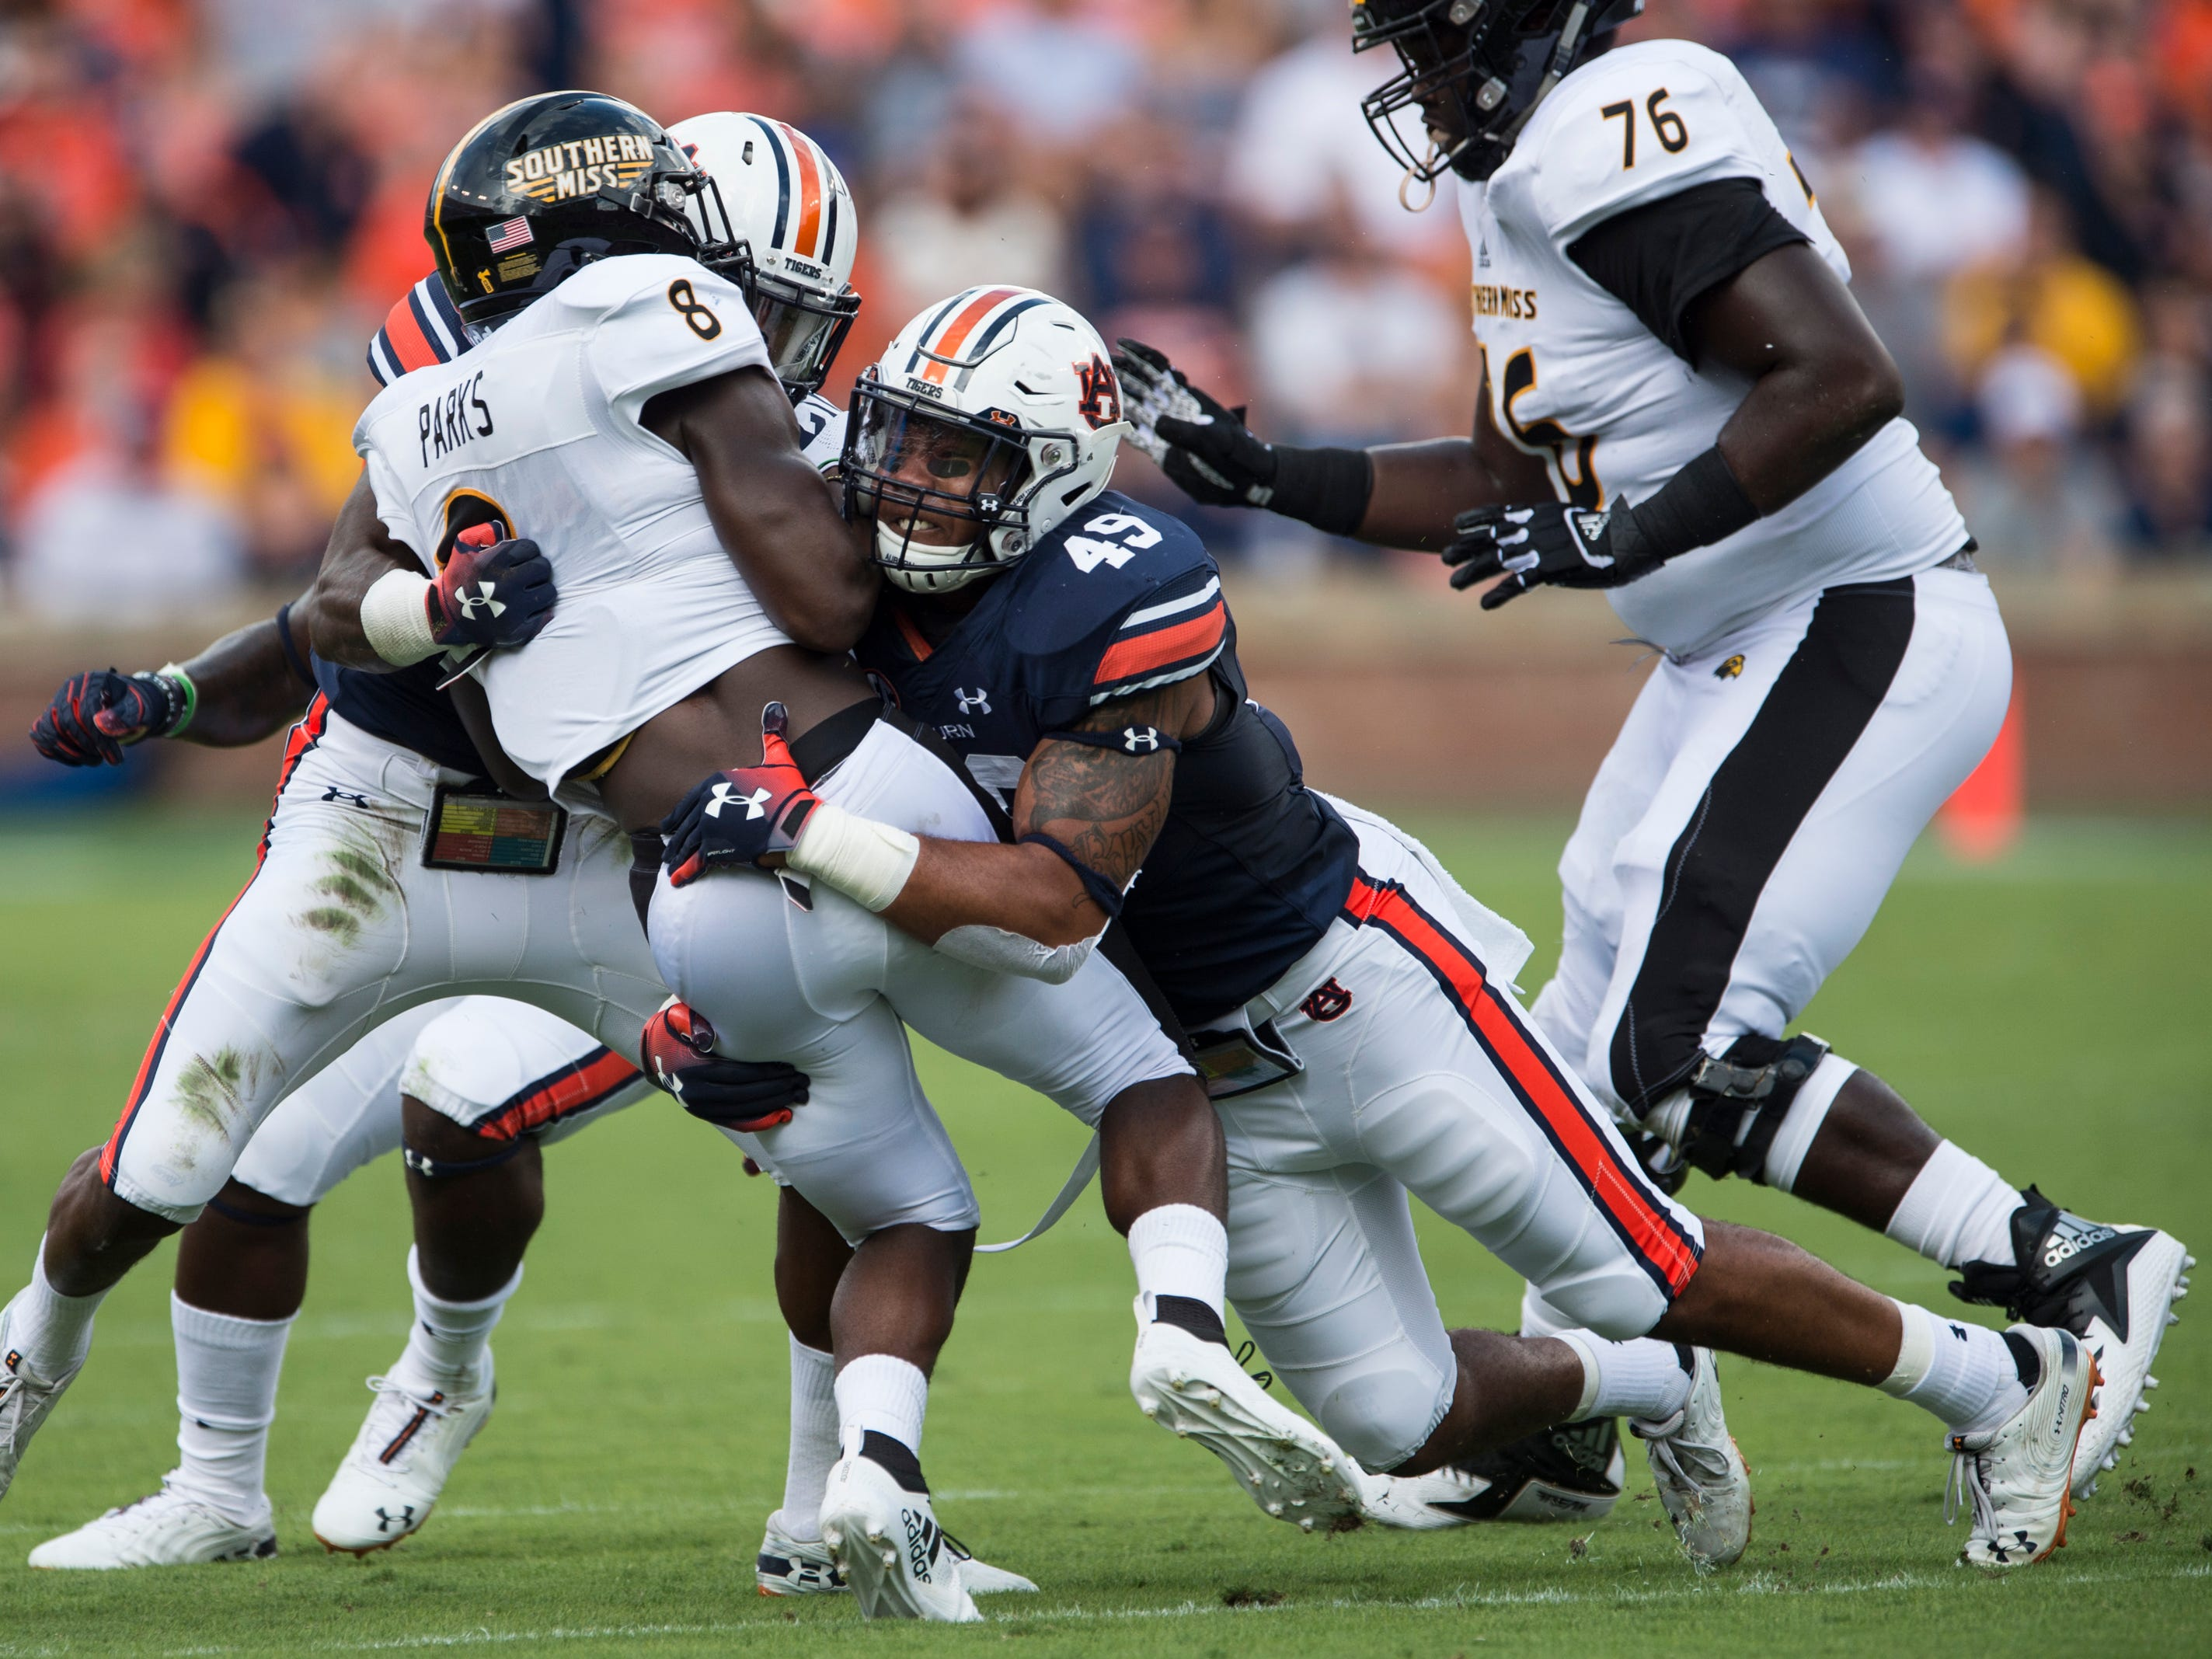 Southern Miss' Tez Parks (8) is taken down by Auburn's Darrell Williams (49) at Jordan-Hare Stadium in Auburn, Ala., on Saturday, Sept. 29, 2018. Auburn leads Southern Miss 14-3, the game went into a weather delay with 4:27 left in the second quarter.